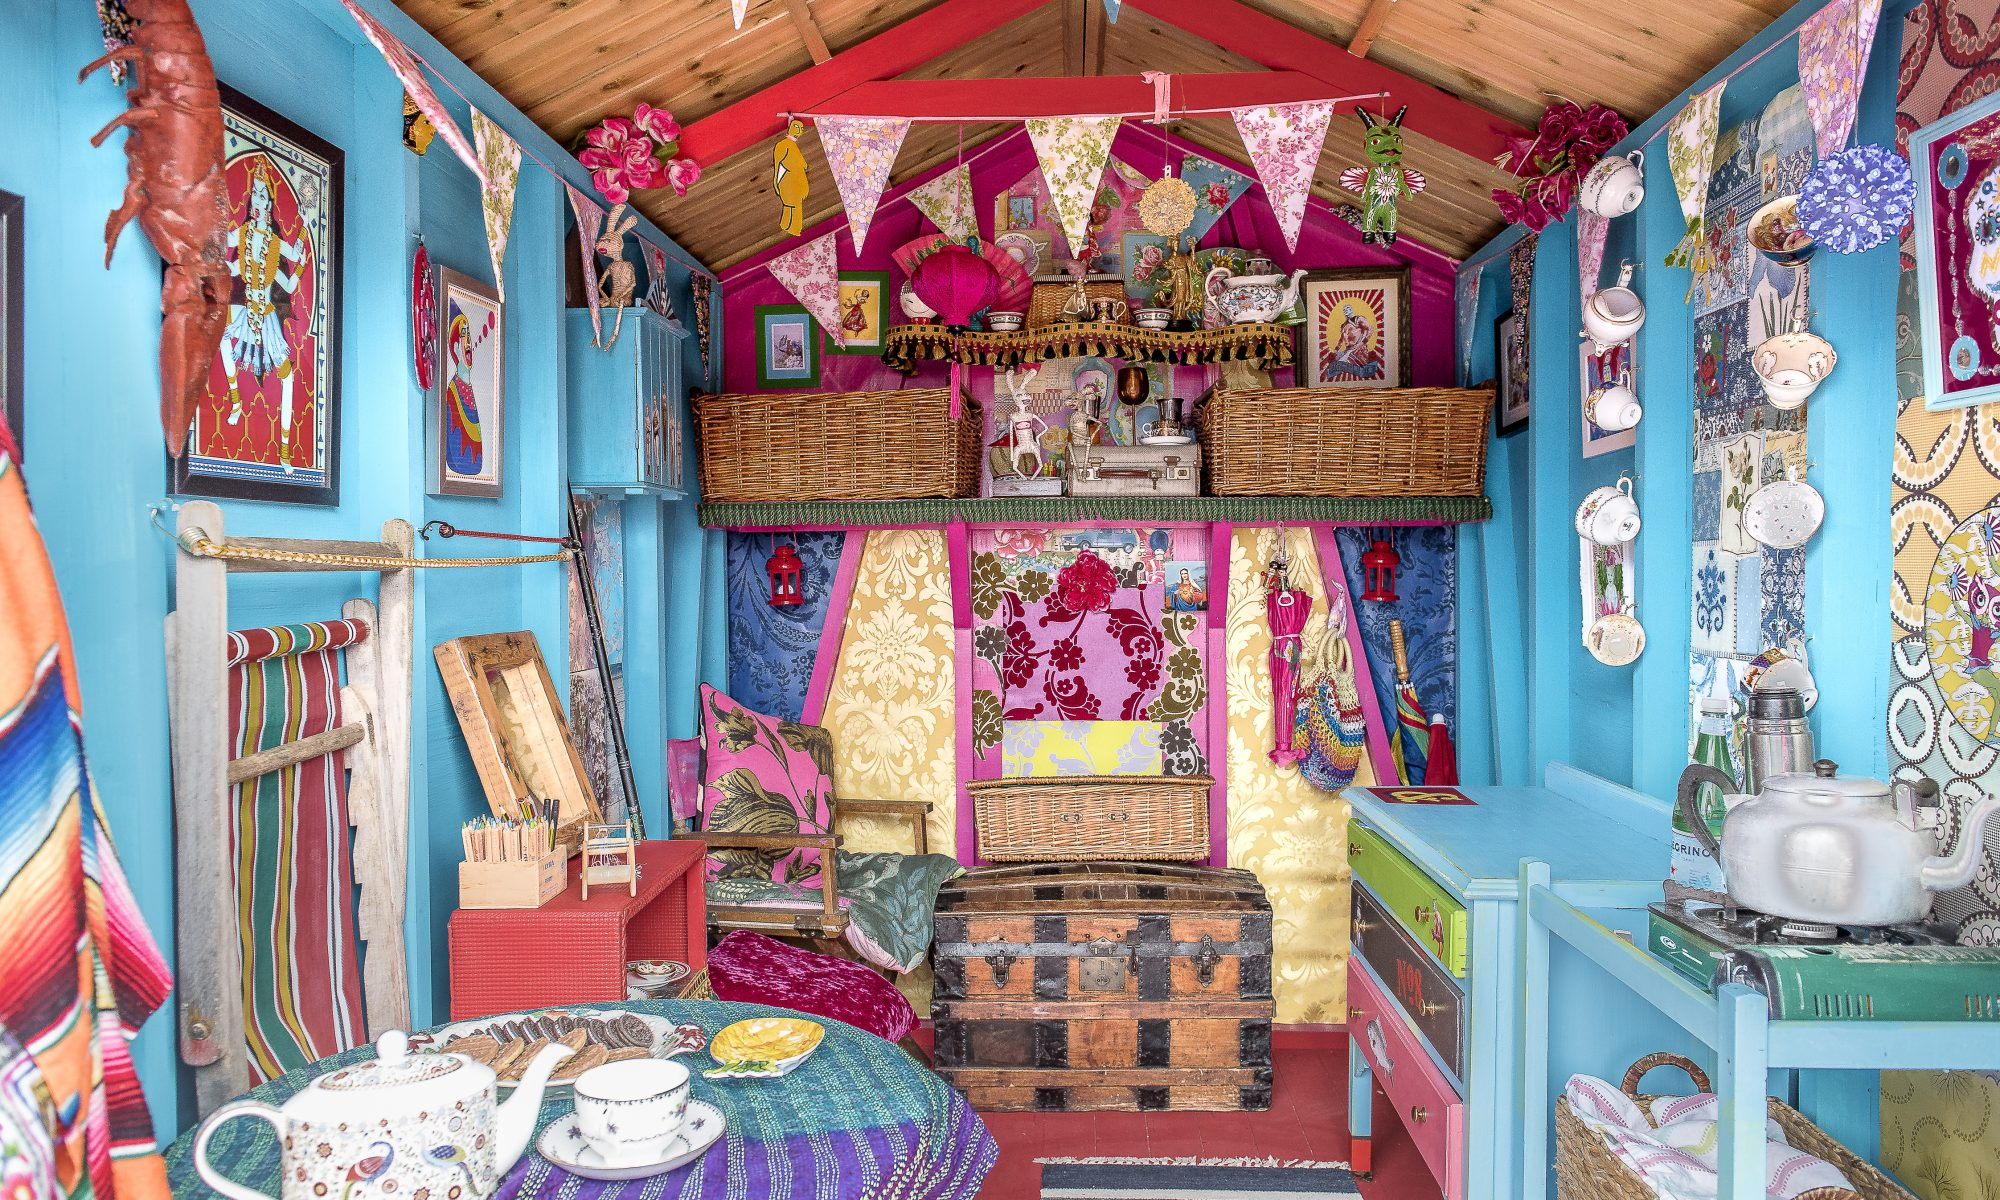 The beach hut is decorated in the same pink and blue colour scheme as Annemarie's house, with more wallpaper samples